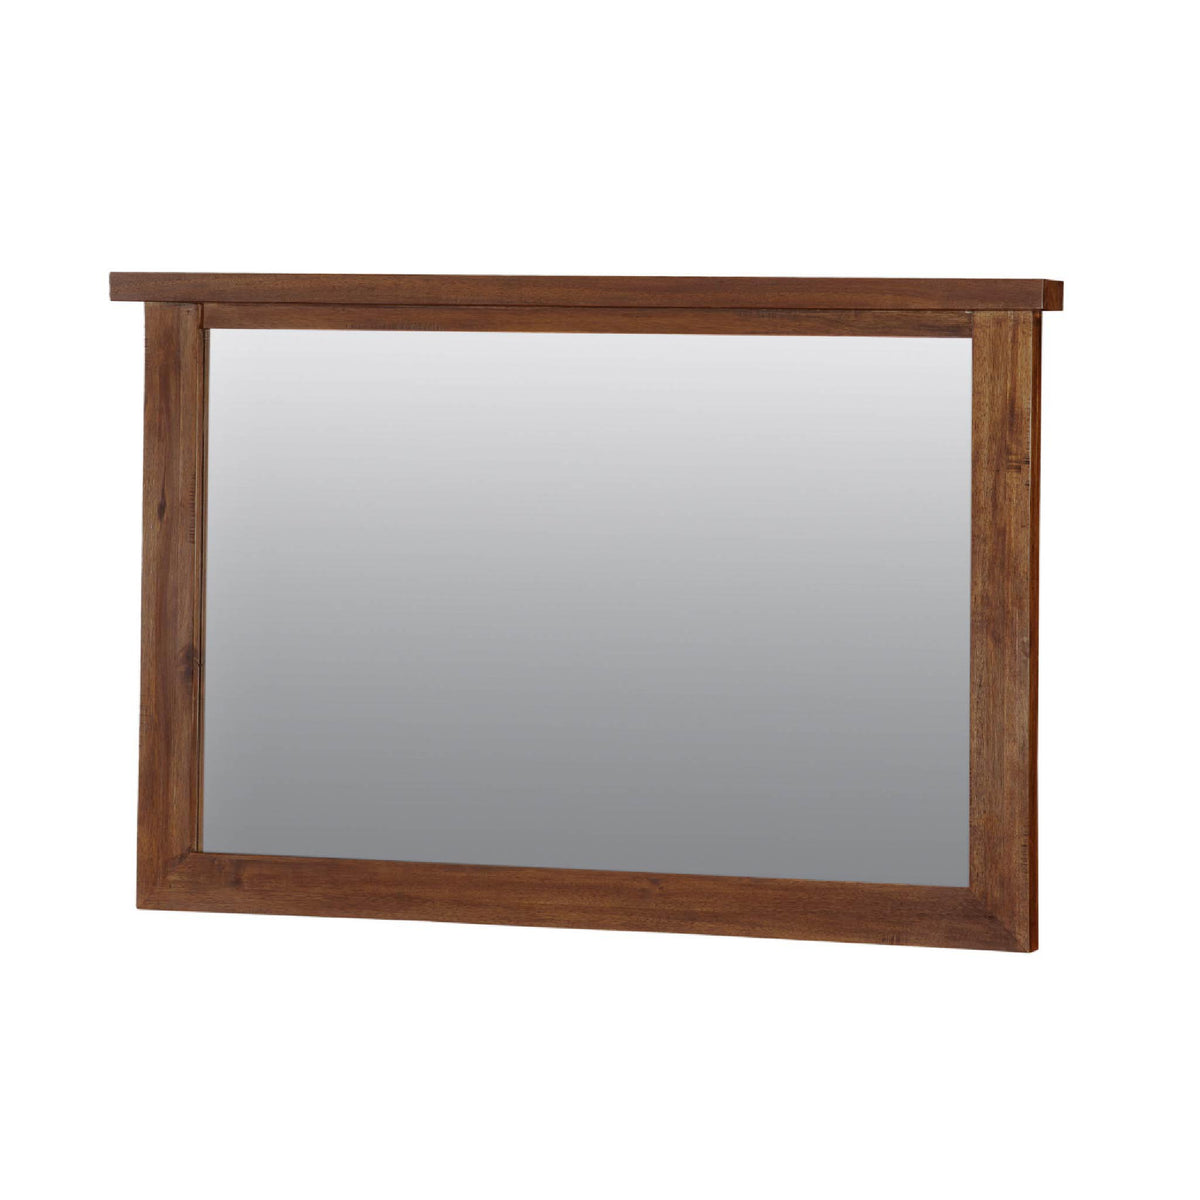 Ladock Rectangular Mirror by Roseland Furniture